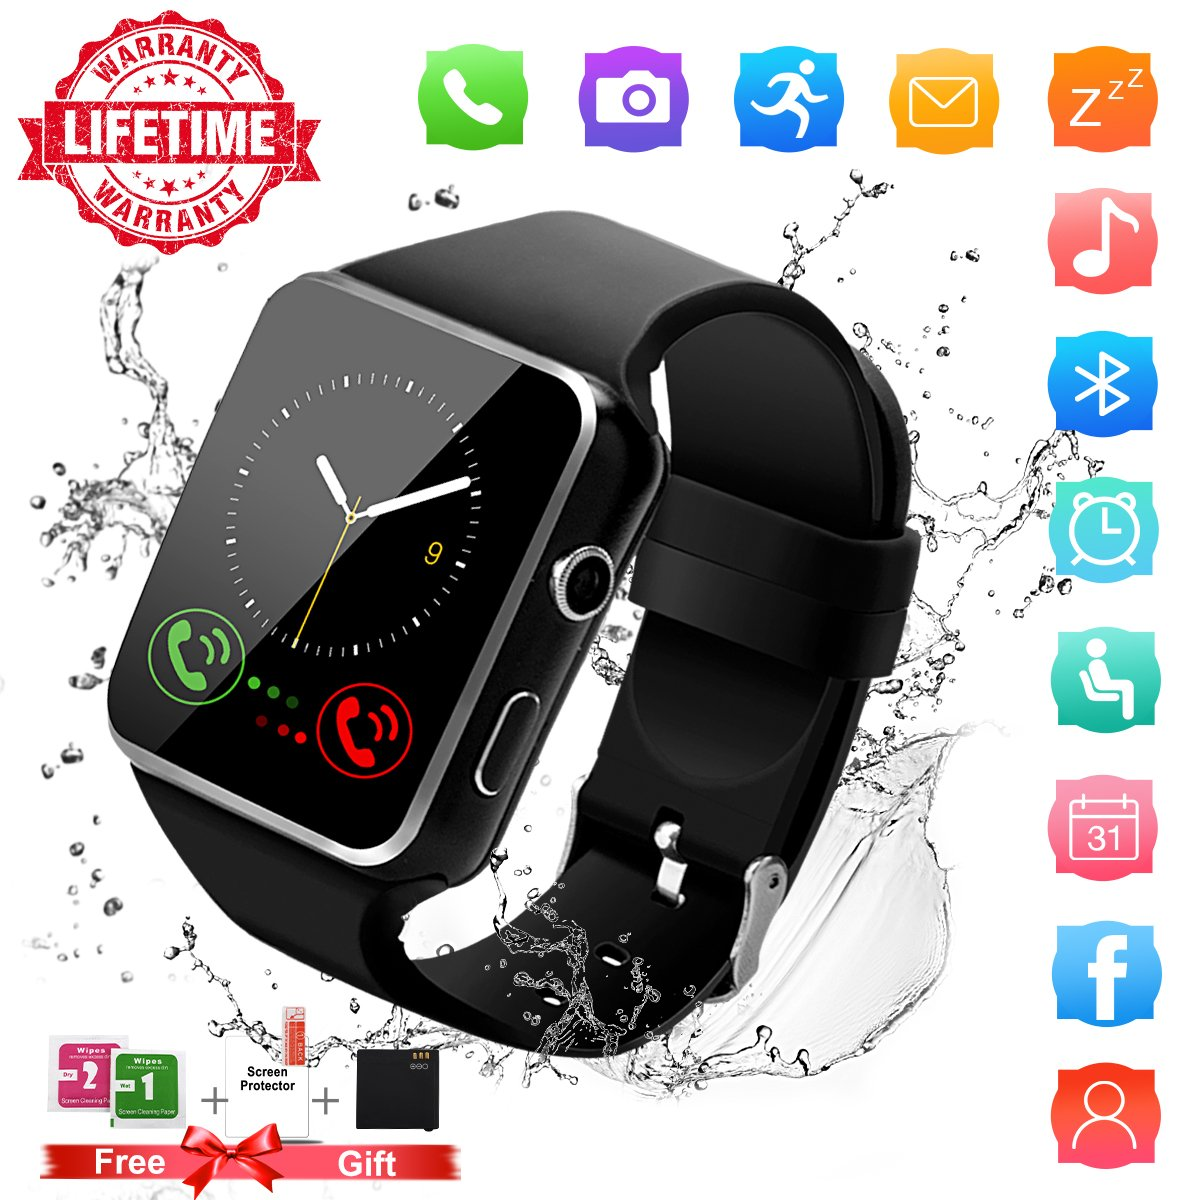 Smart Watch,Bluetooth Smartwatch Touch Screen Wrist Watch with Camera/SIM Waterproof Phone Smart Watch Sports Fitness Tracker for Android iPhone IOS Samsung Huawei Sony for Kids Women Men (X6-Black)